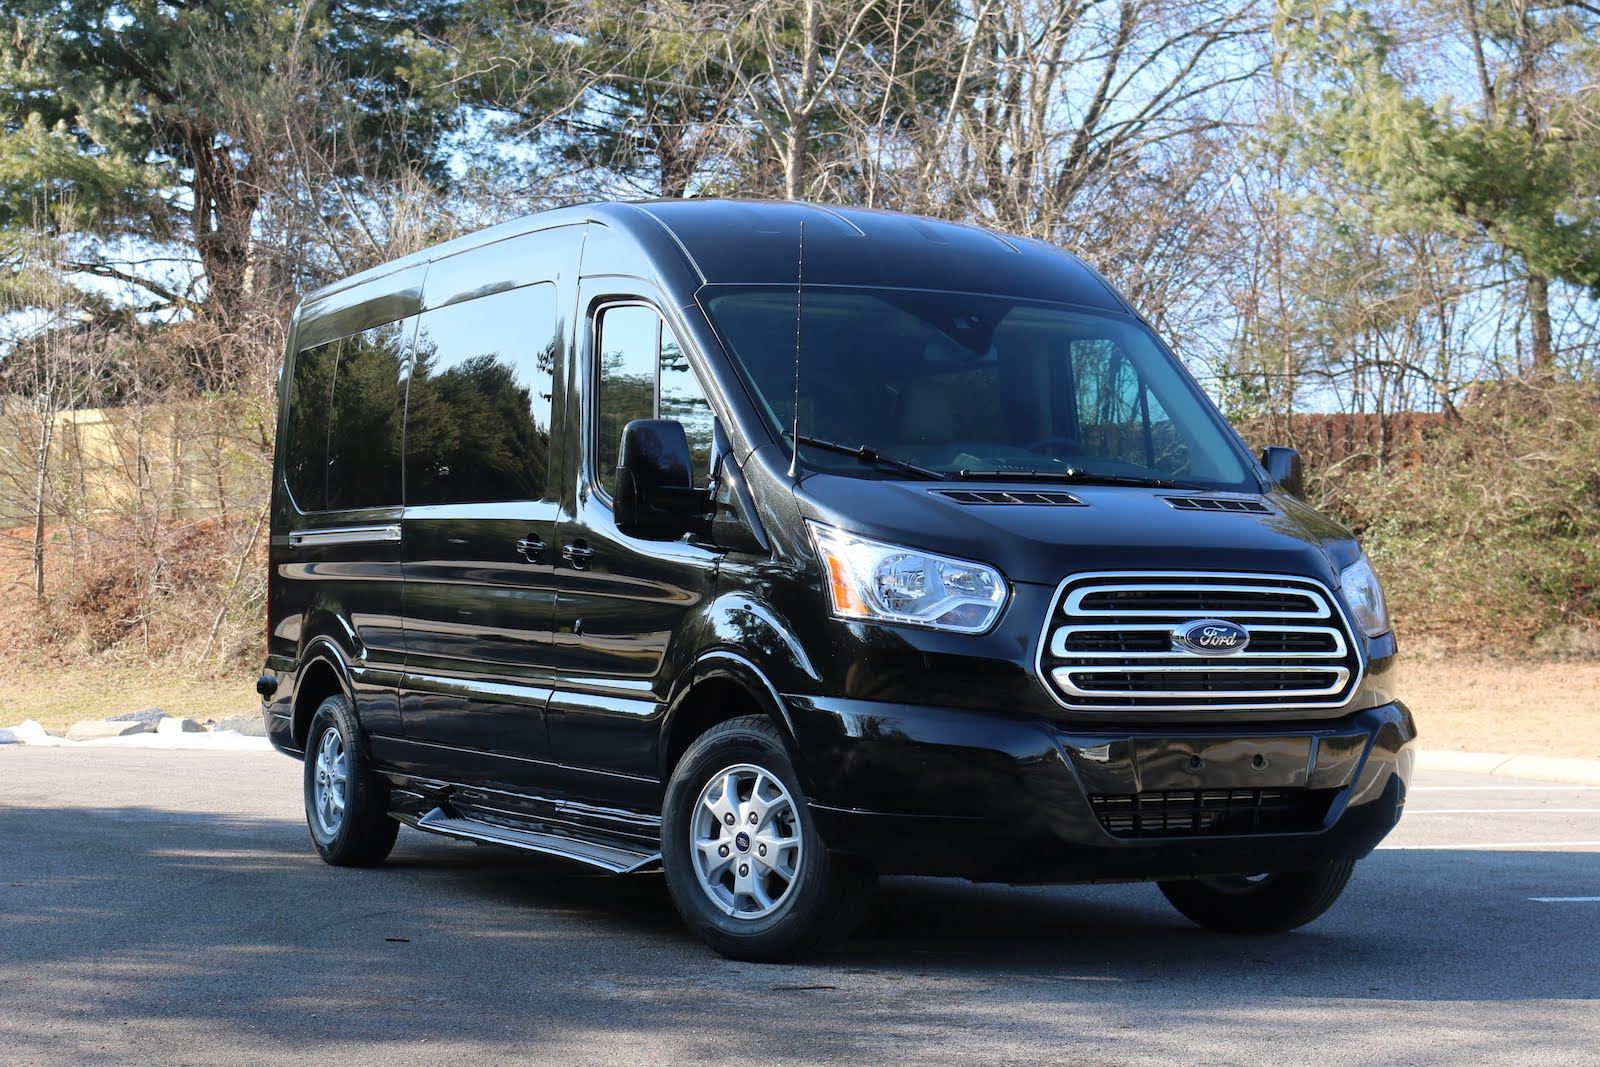 Book a 10 passenger van rental. Ideal for getting a large group around town and beyond. See pricing and availability today